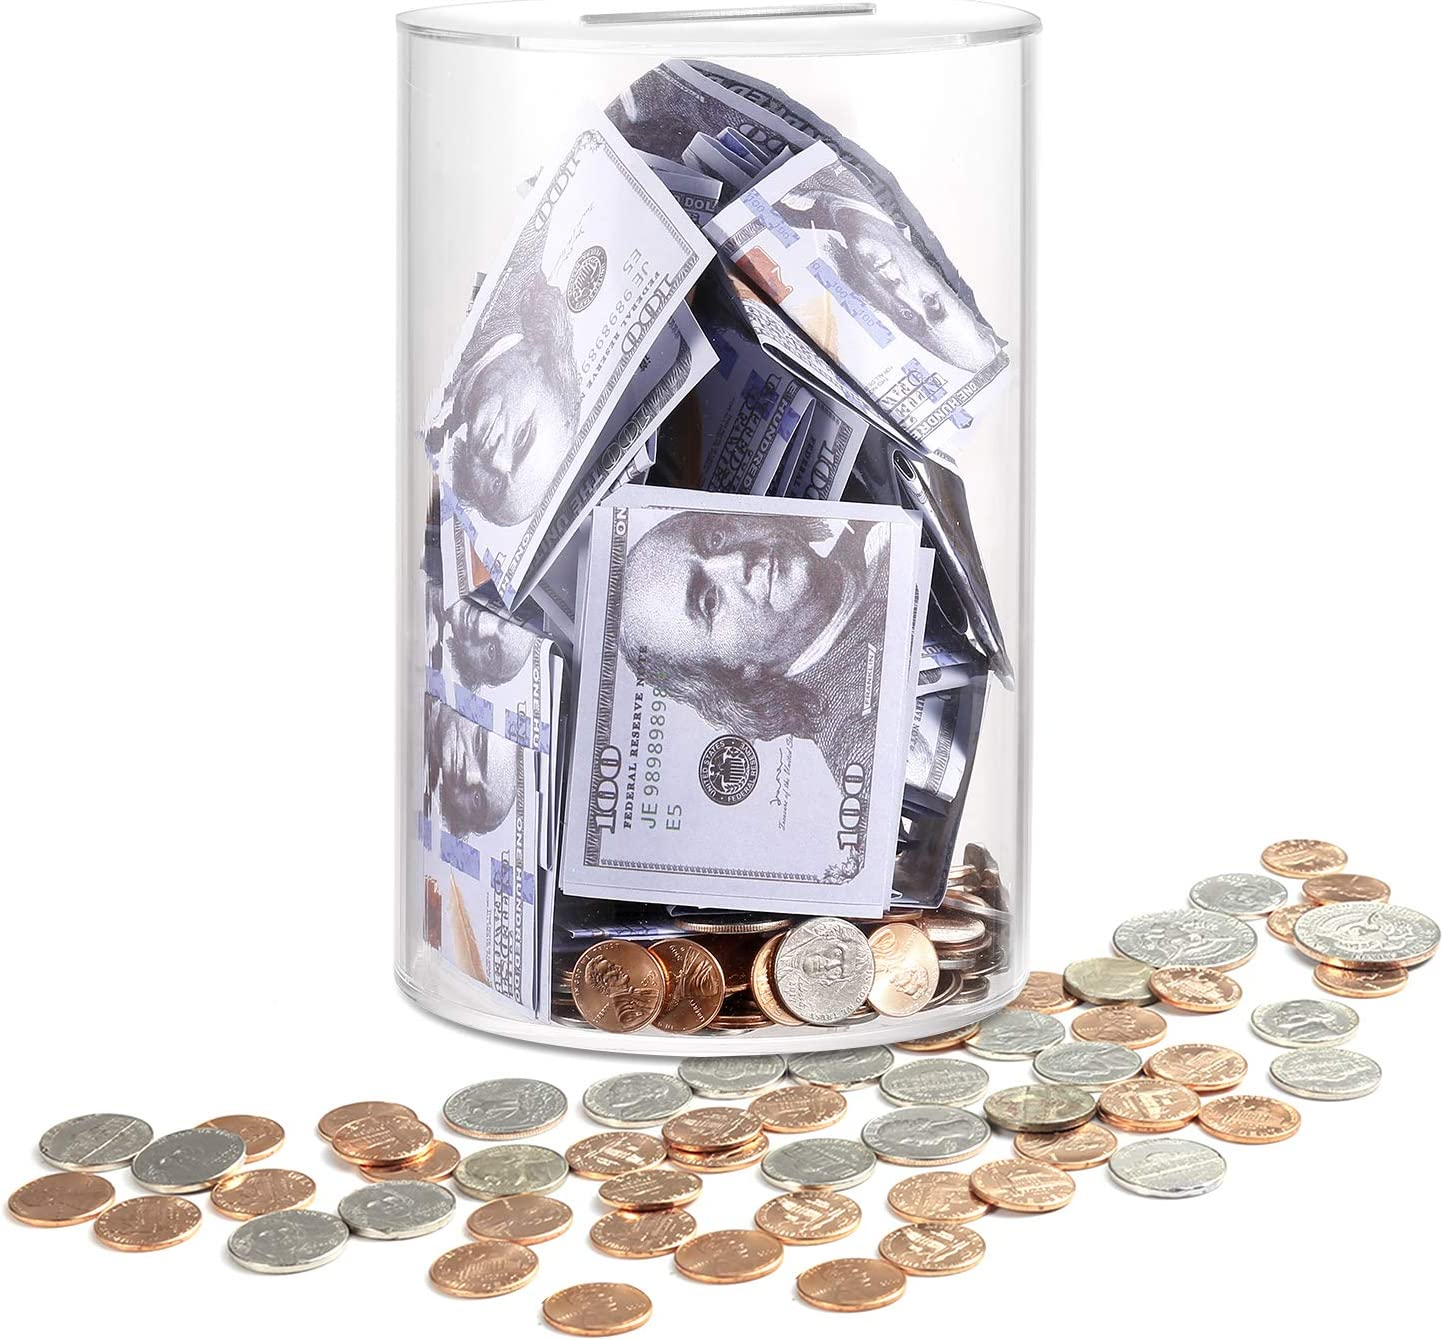 Adult Piggy Bank Break to Open, ARIAL Clear Piggy Bank Savings Jar Cash and Coin, for Adults Kids Birthdays Home Decoration-Medium